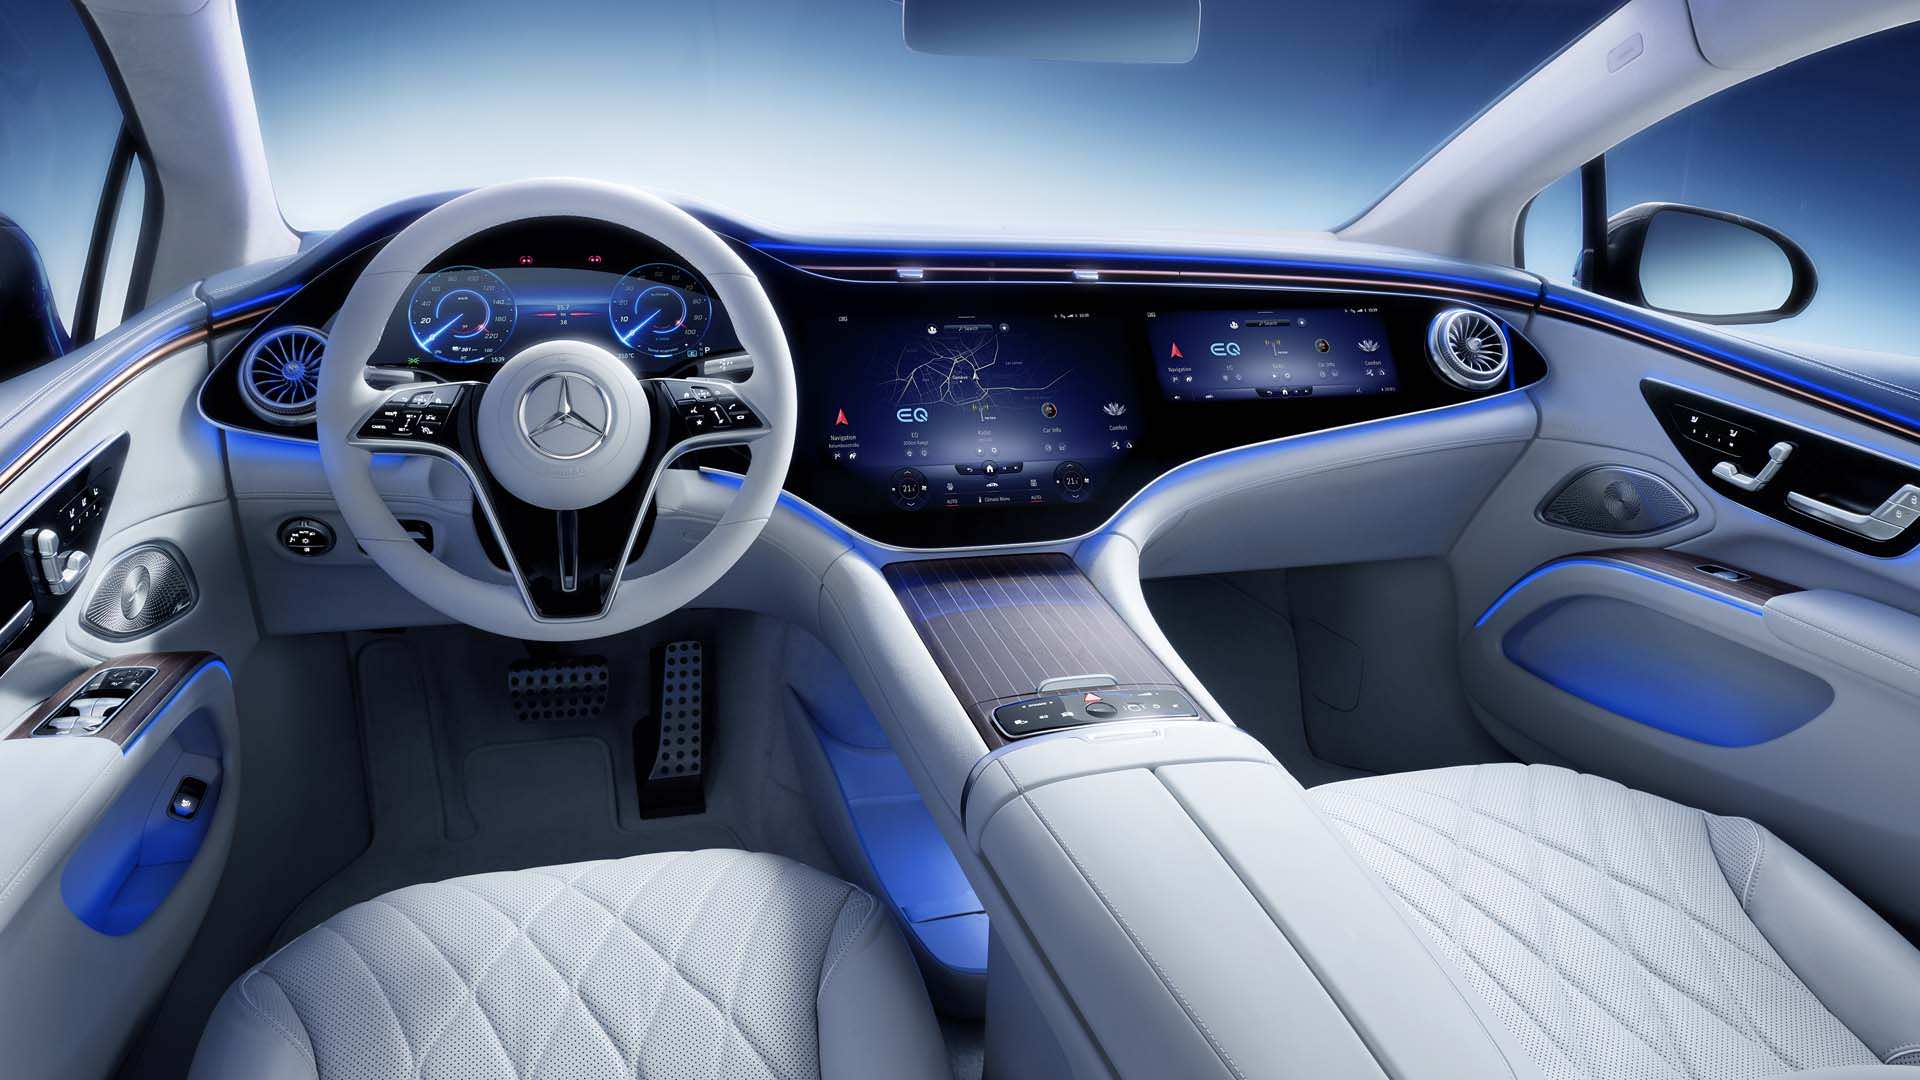 Mercedes EQS 2022 Interior